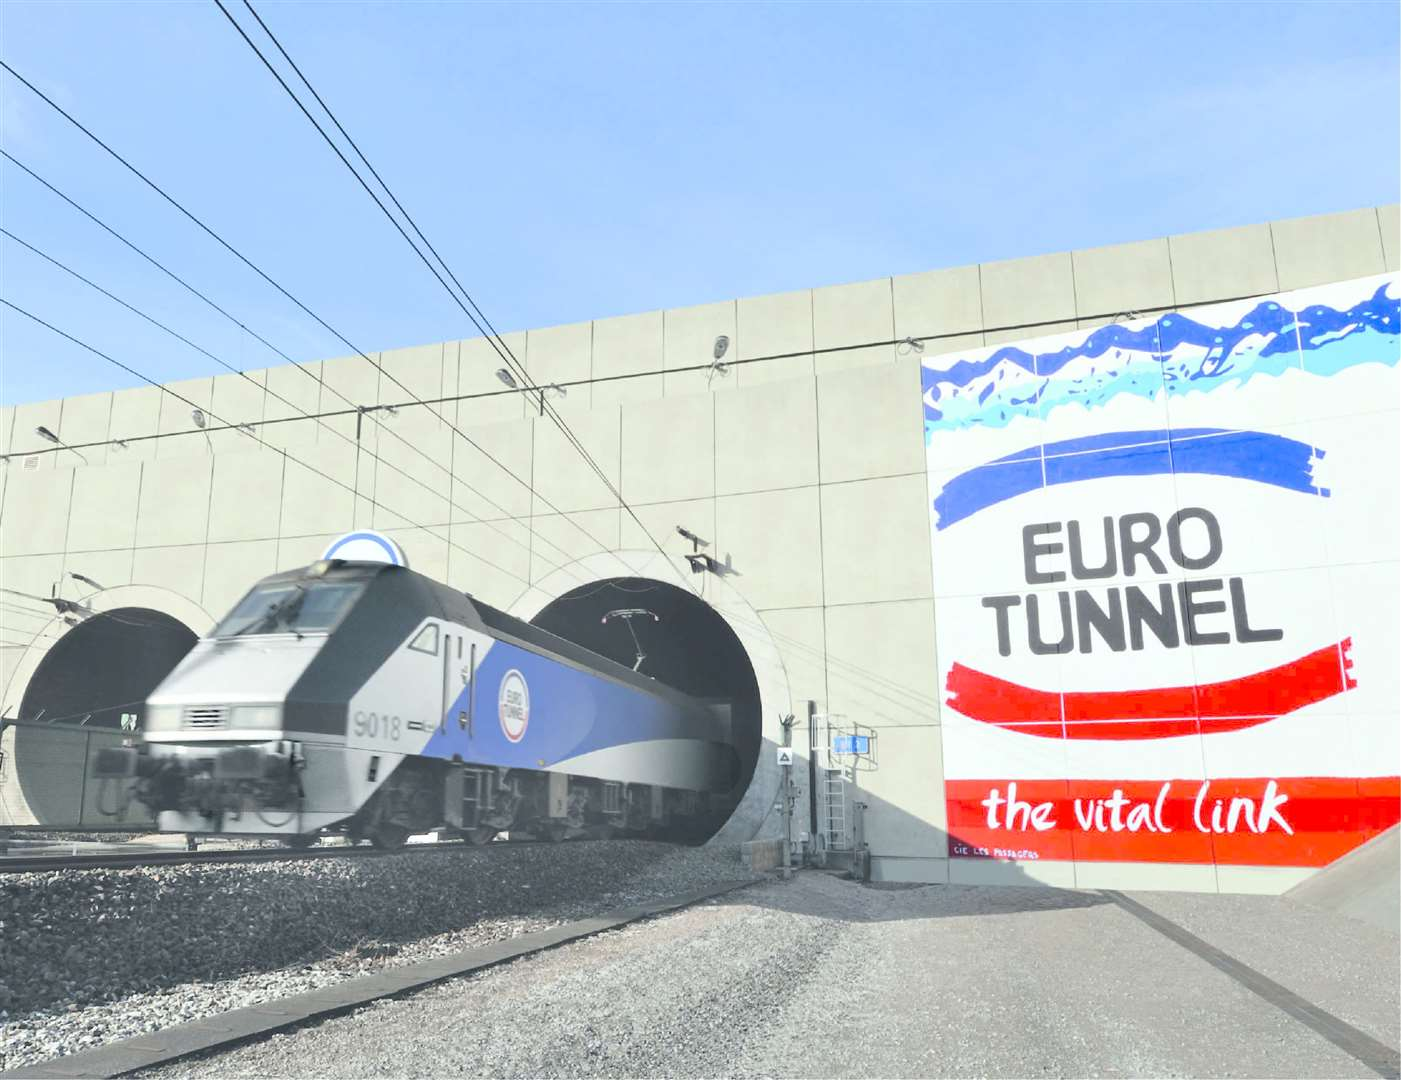 Eurotunnel has been hit hard by the travel restrictions